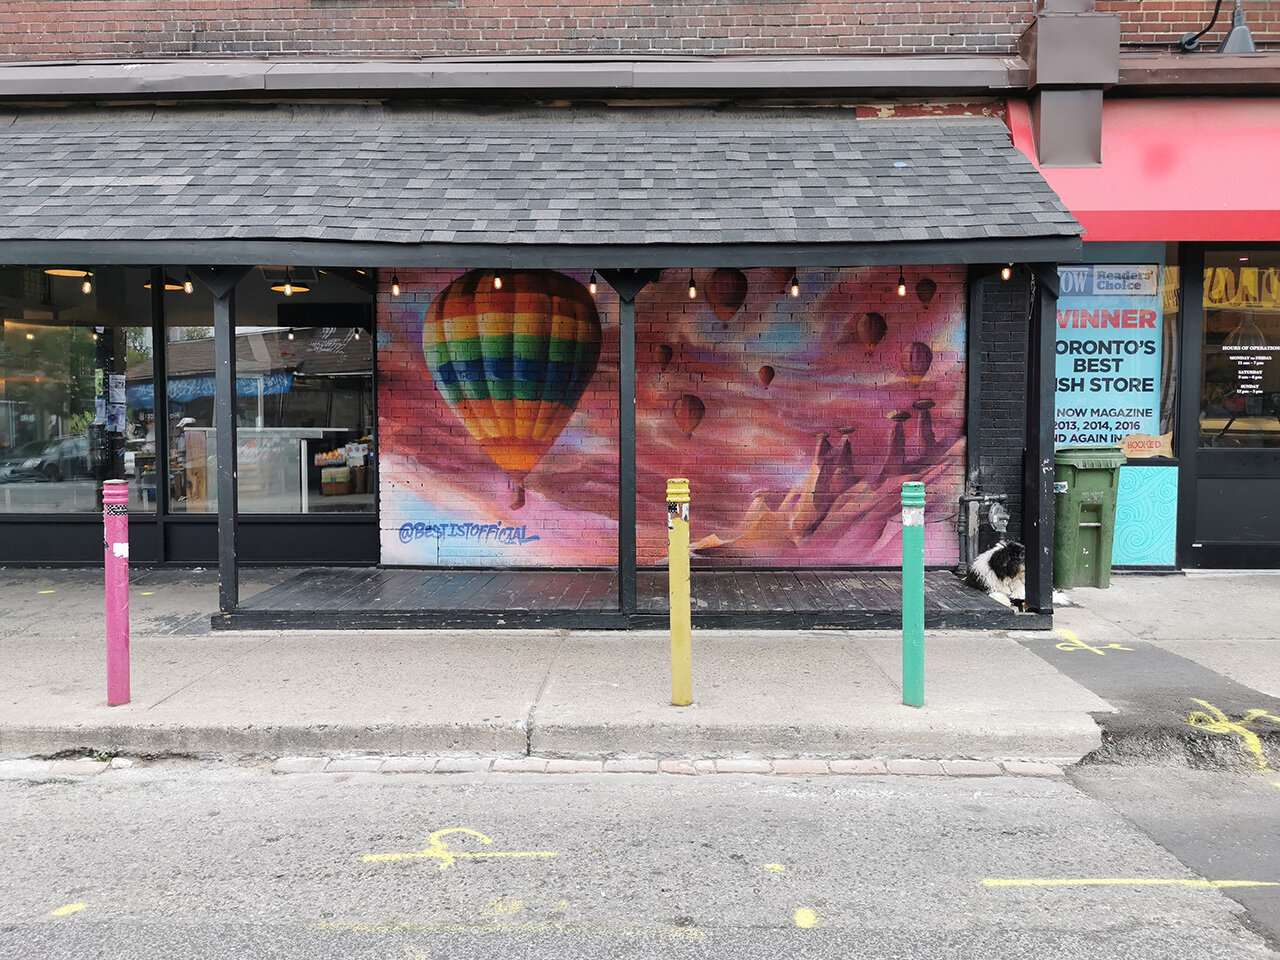 Hot air balloon wall art paired with multi-coloured street posts. Do you spot the puppy hanging out in this photo?